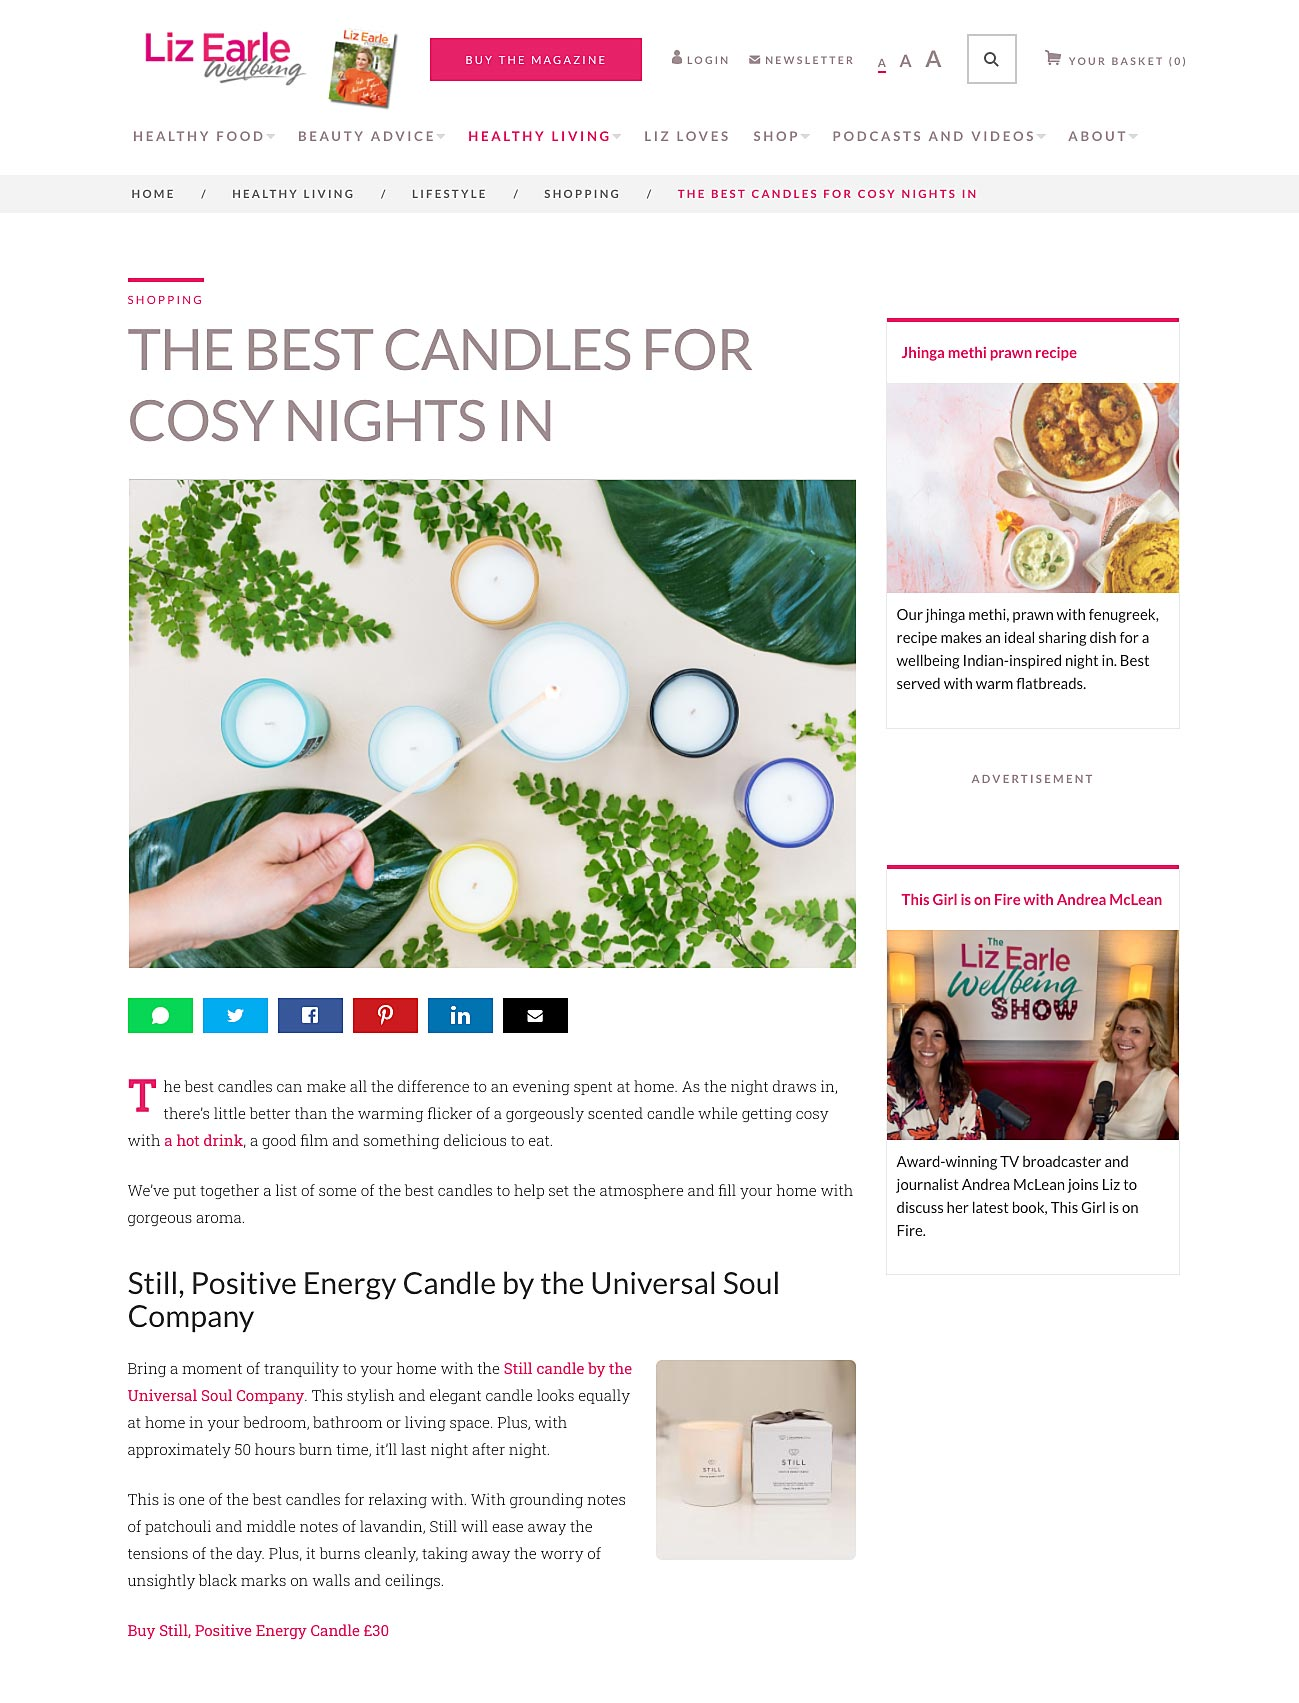 STILL POSITIVE ENERGY CANDLE IS VOTED THE BEST CANDLE FOR A COSY NIGHT IN BY LIZ EARLE WELLBEING ARTICLE